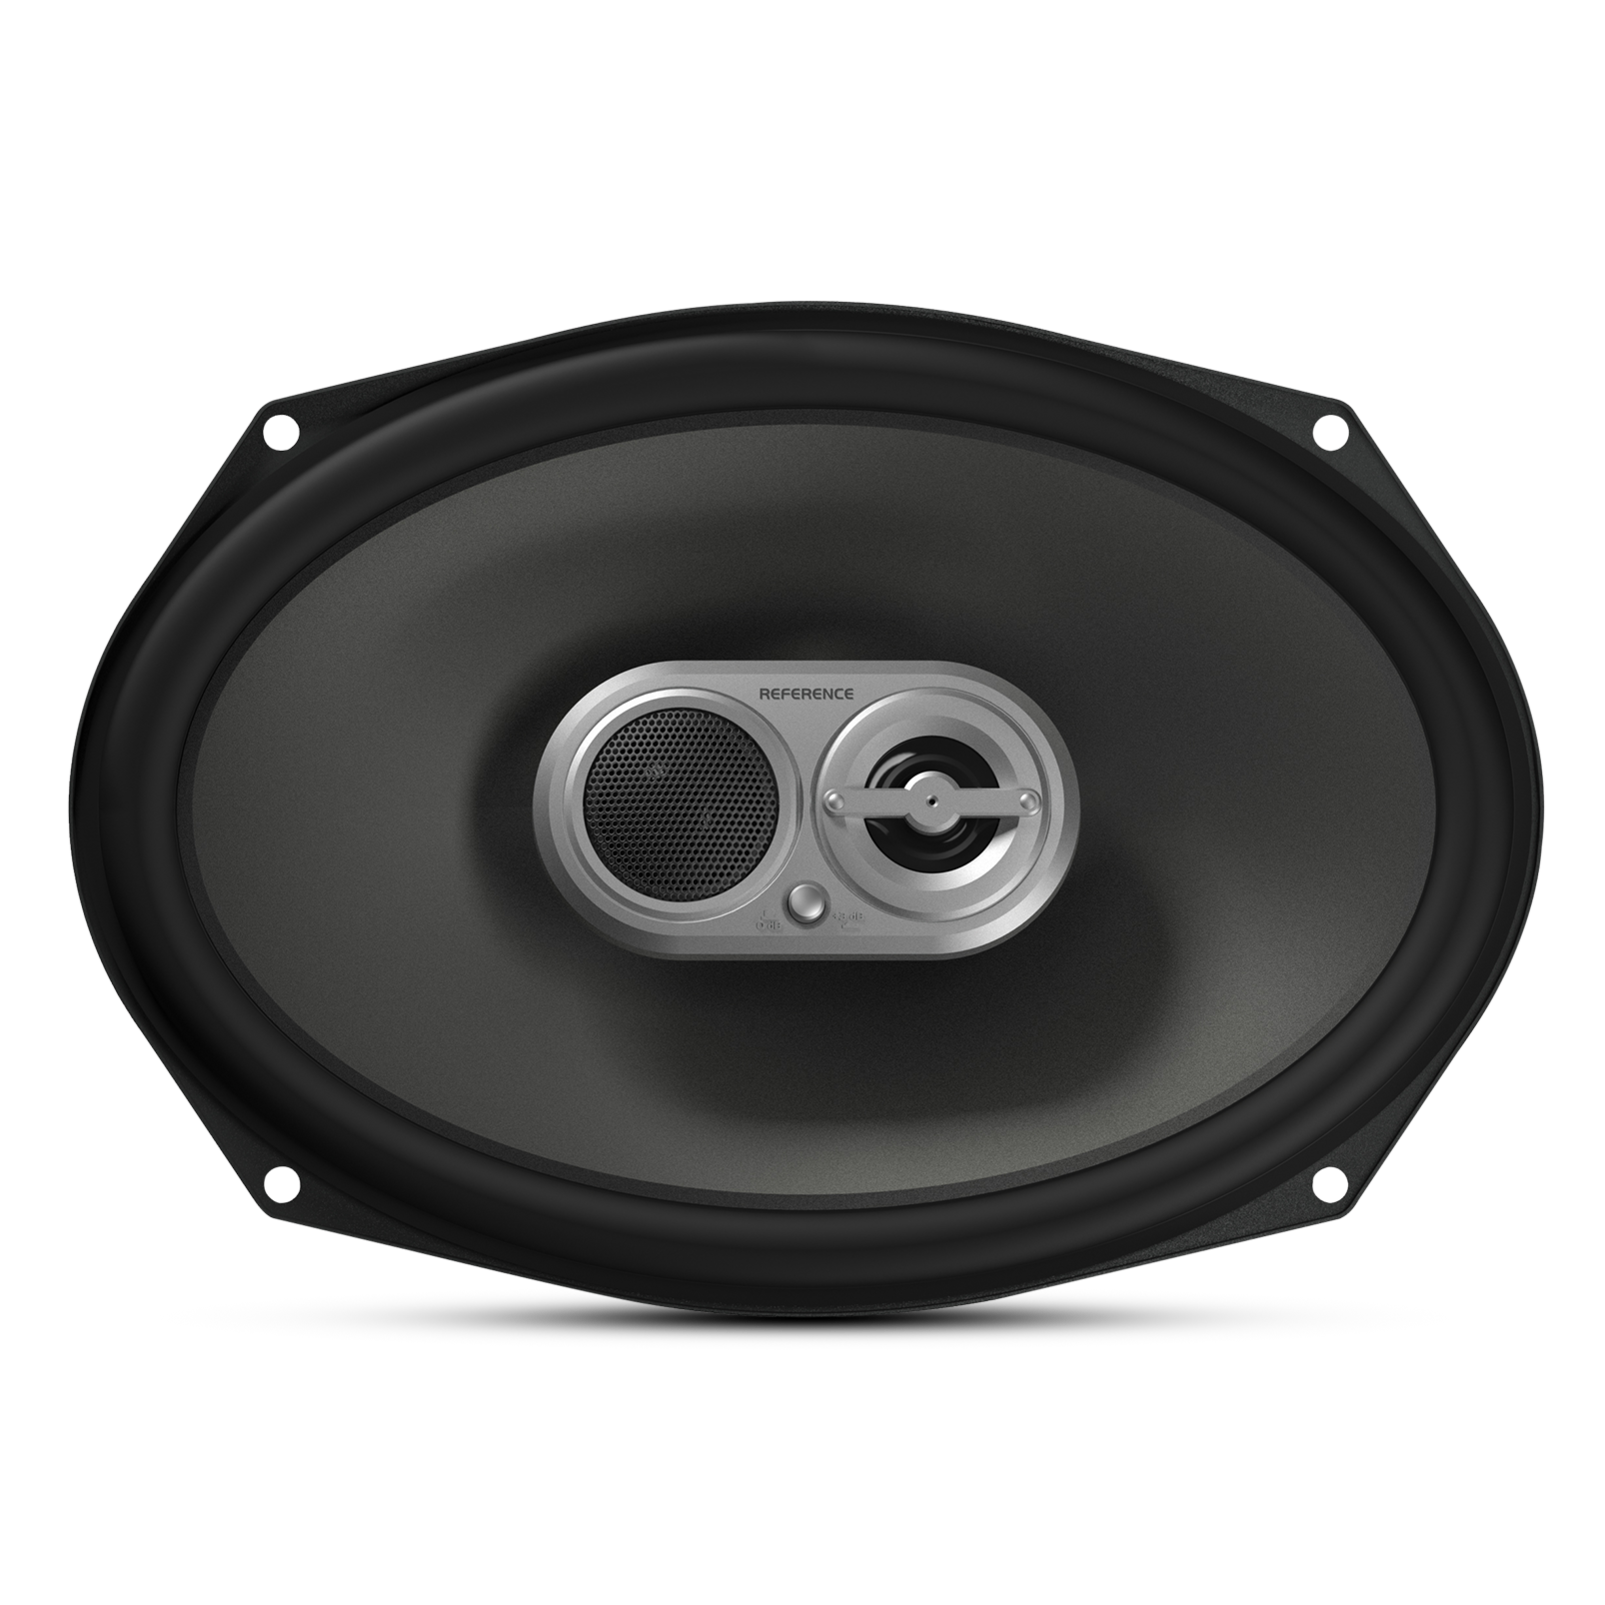 """Reference 9603ix - Black - A 6"""" x 9"""", three-way, high-fidelity speaker with true 4-ohm technology - Front"""